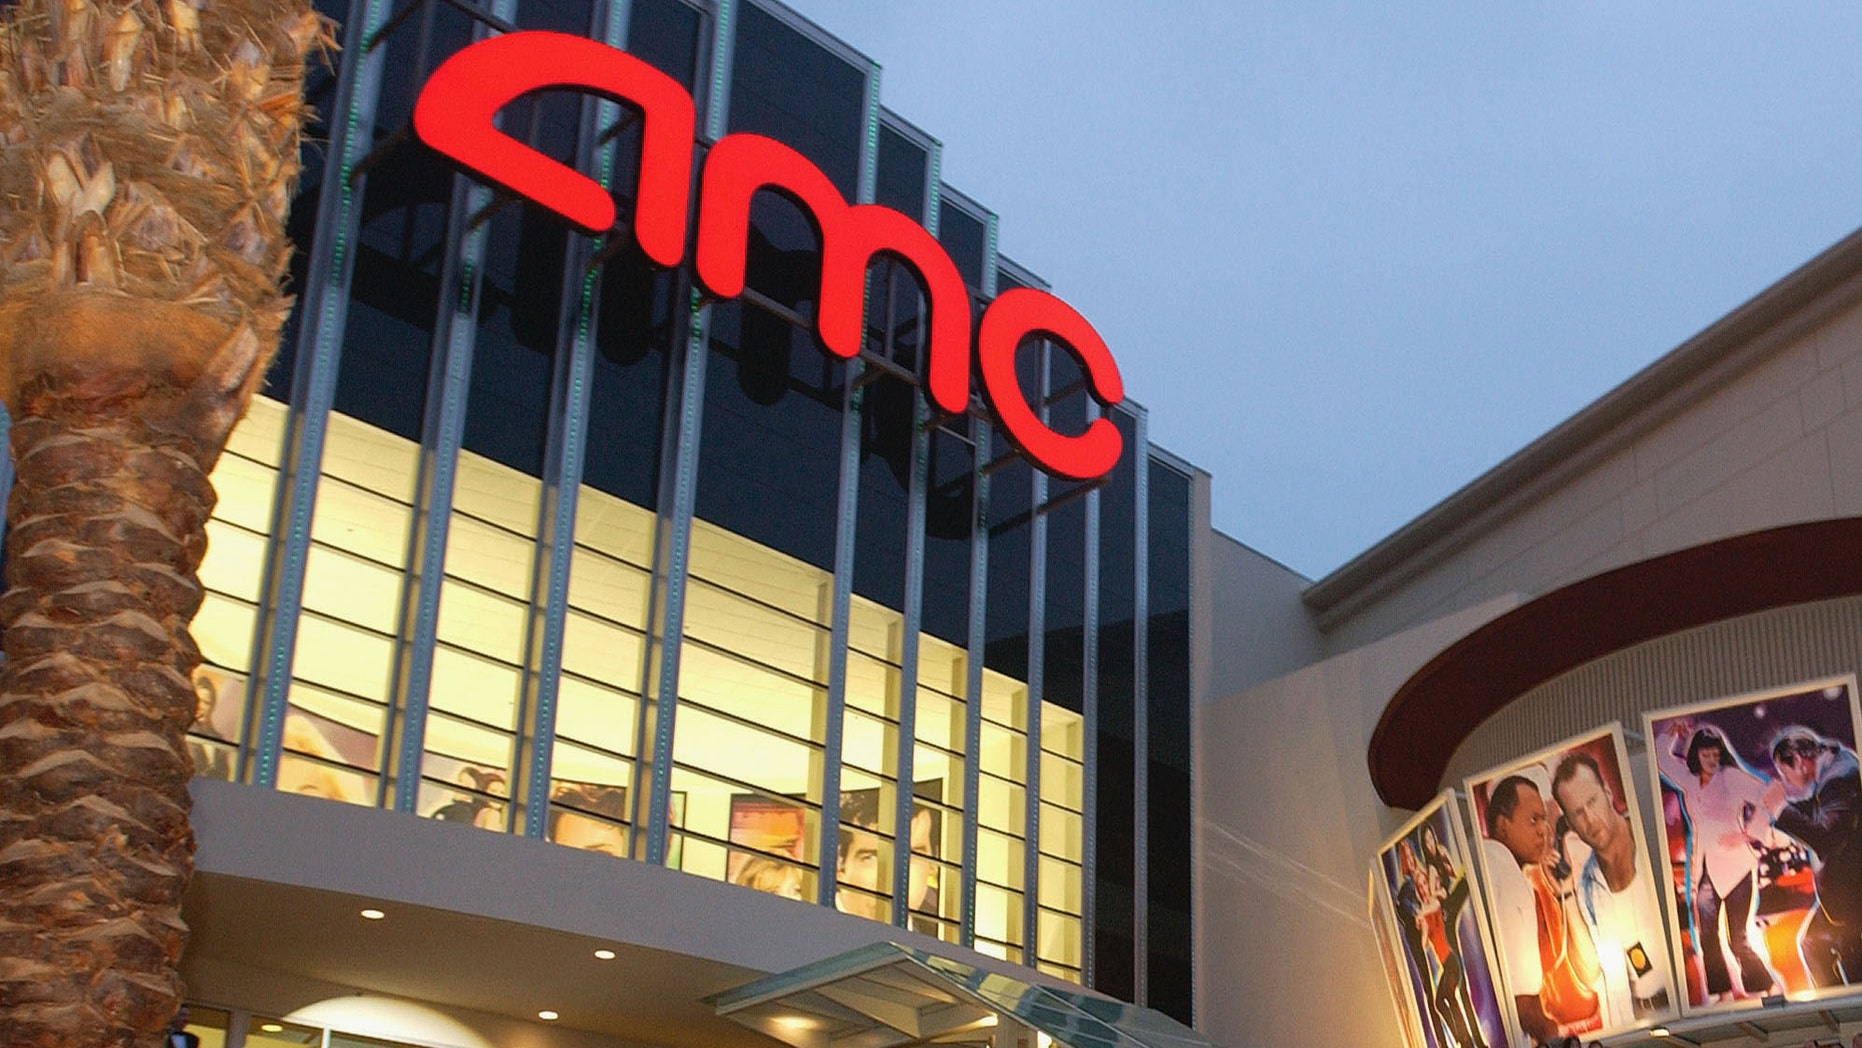 BURBANK, CA - JUNE 18:  Crowds gather at the new AMC Burbank 16 in Burbank, California. The grand opening/benefit event honored actor Kevin Bacon and his films. (Photo by Vince Bucci/Getty Images)